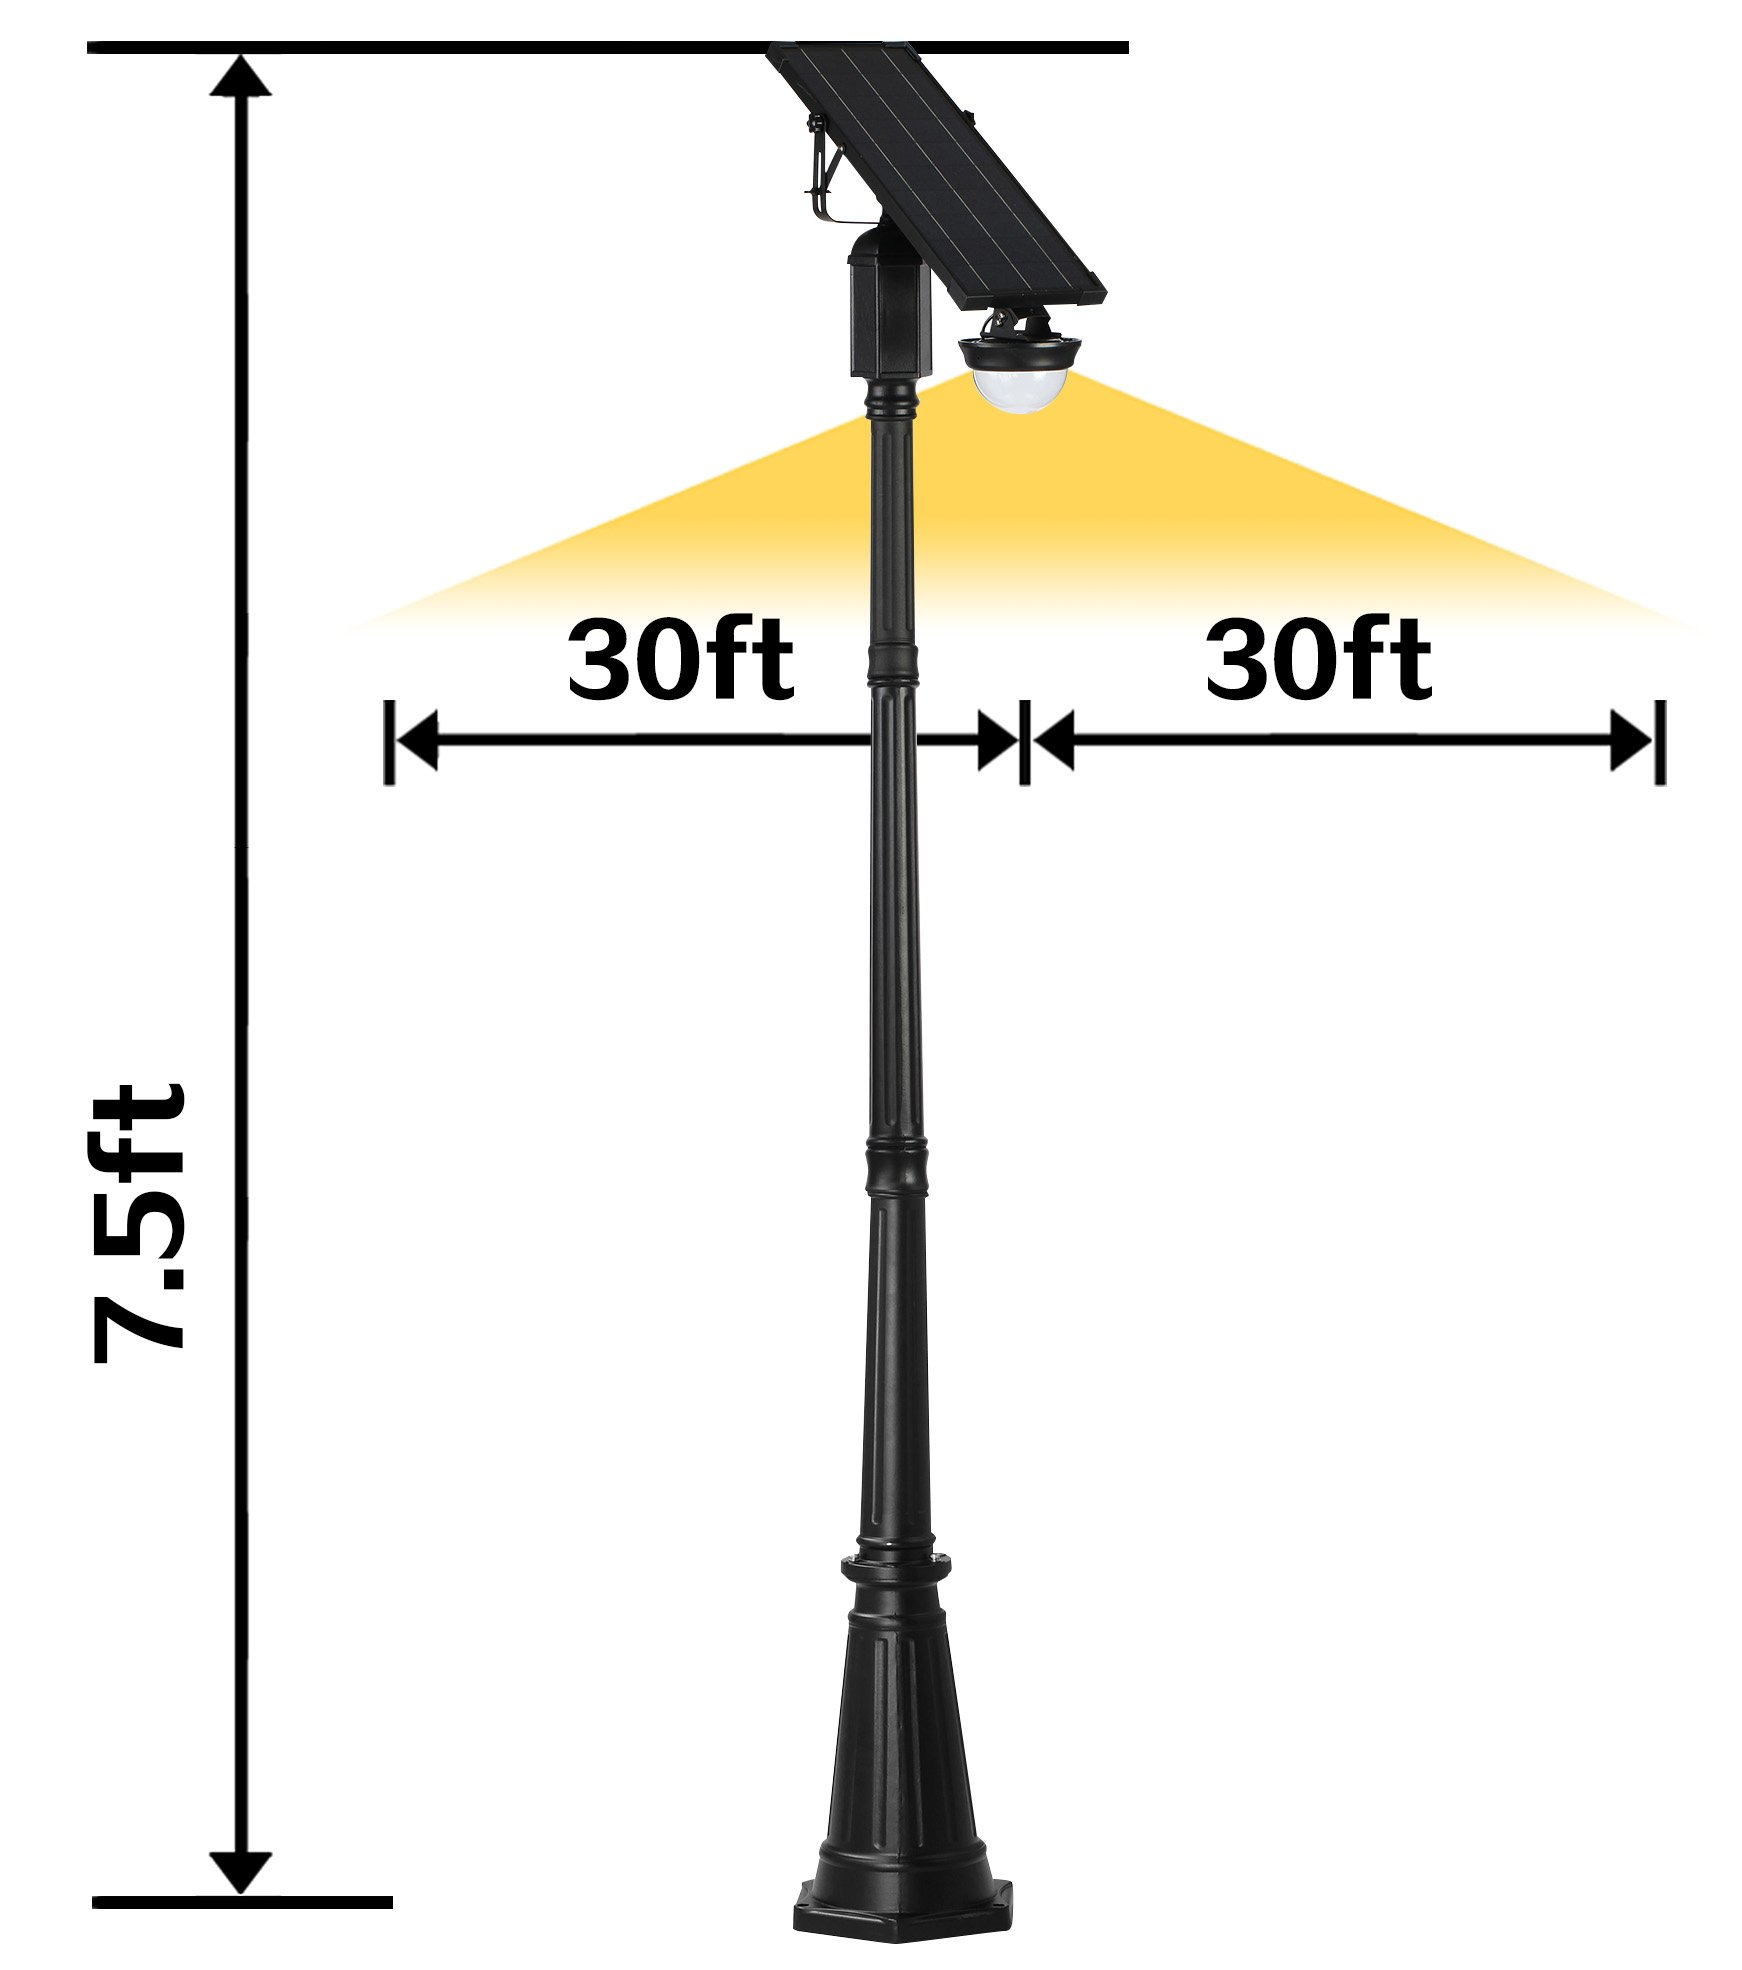 AMSU CREE LED Innovative Broad-Beamed Solar Street Light --COVERING 60 Ft DIAMETER AREA (1000 Ft2) --WORKING ALL YEAR ROUND ALL NIGHT ROUND in Most Areas --MUCH BRIGHTER than Normal Post Lamp